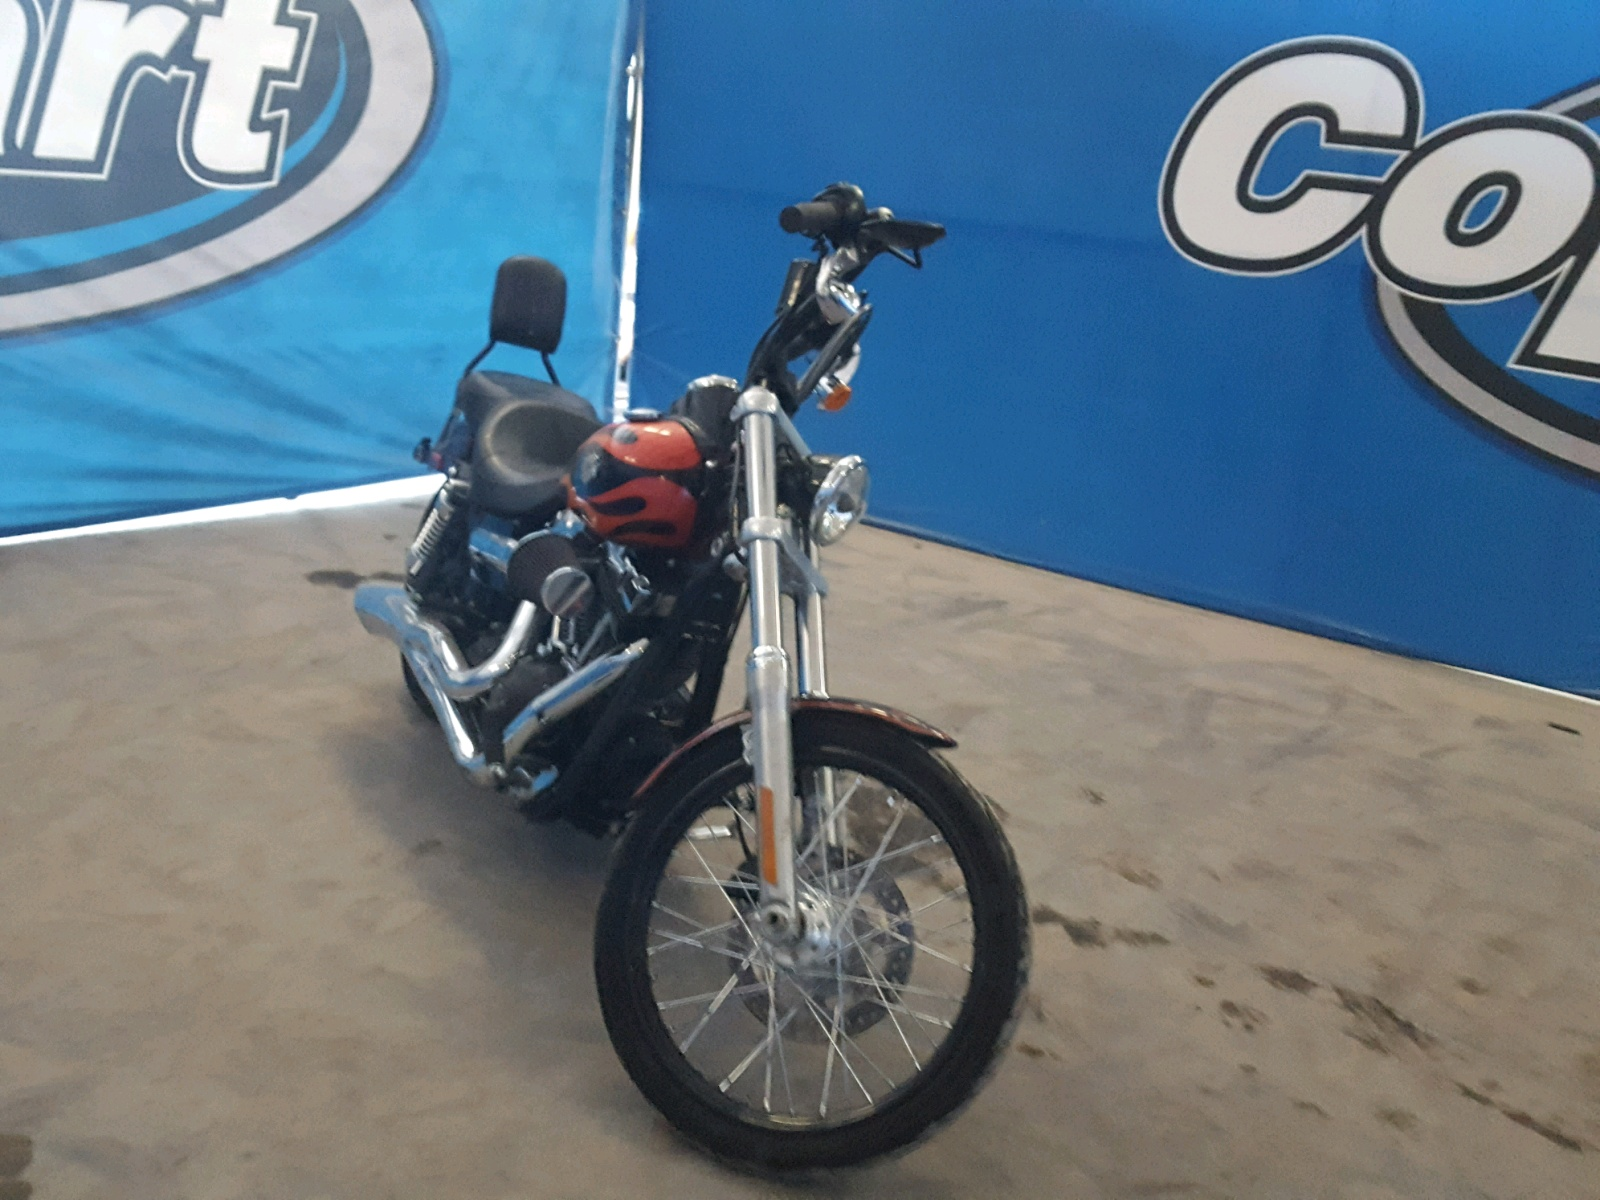 Salvage 2012 Harley-Davidson FXDWG DYNA for sale